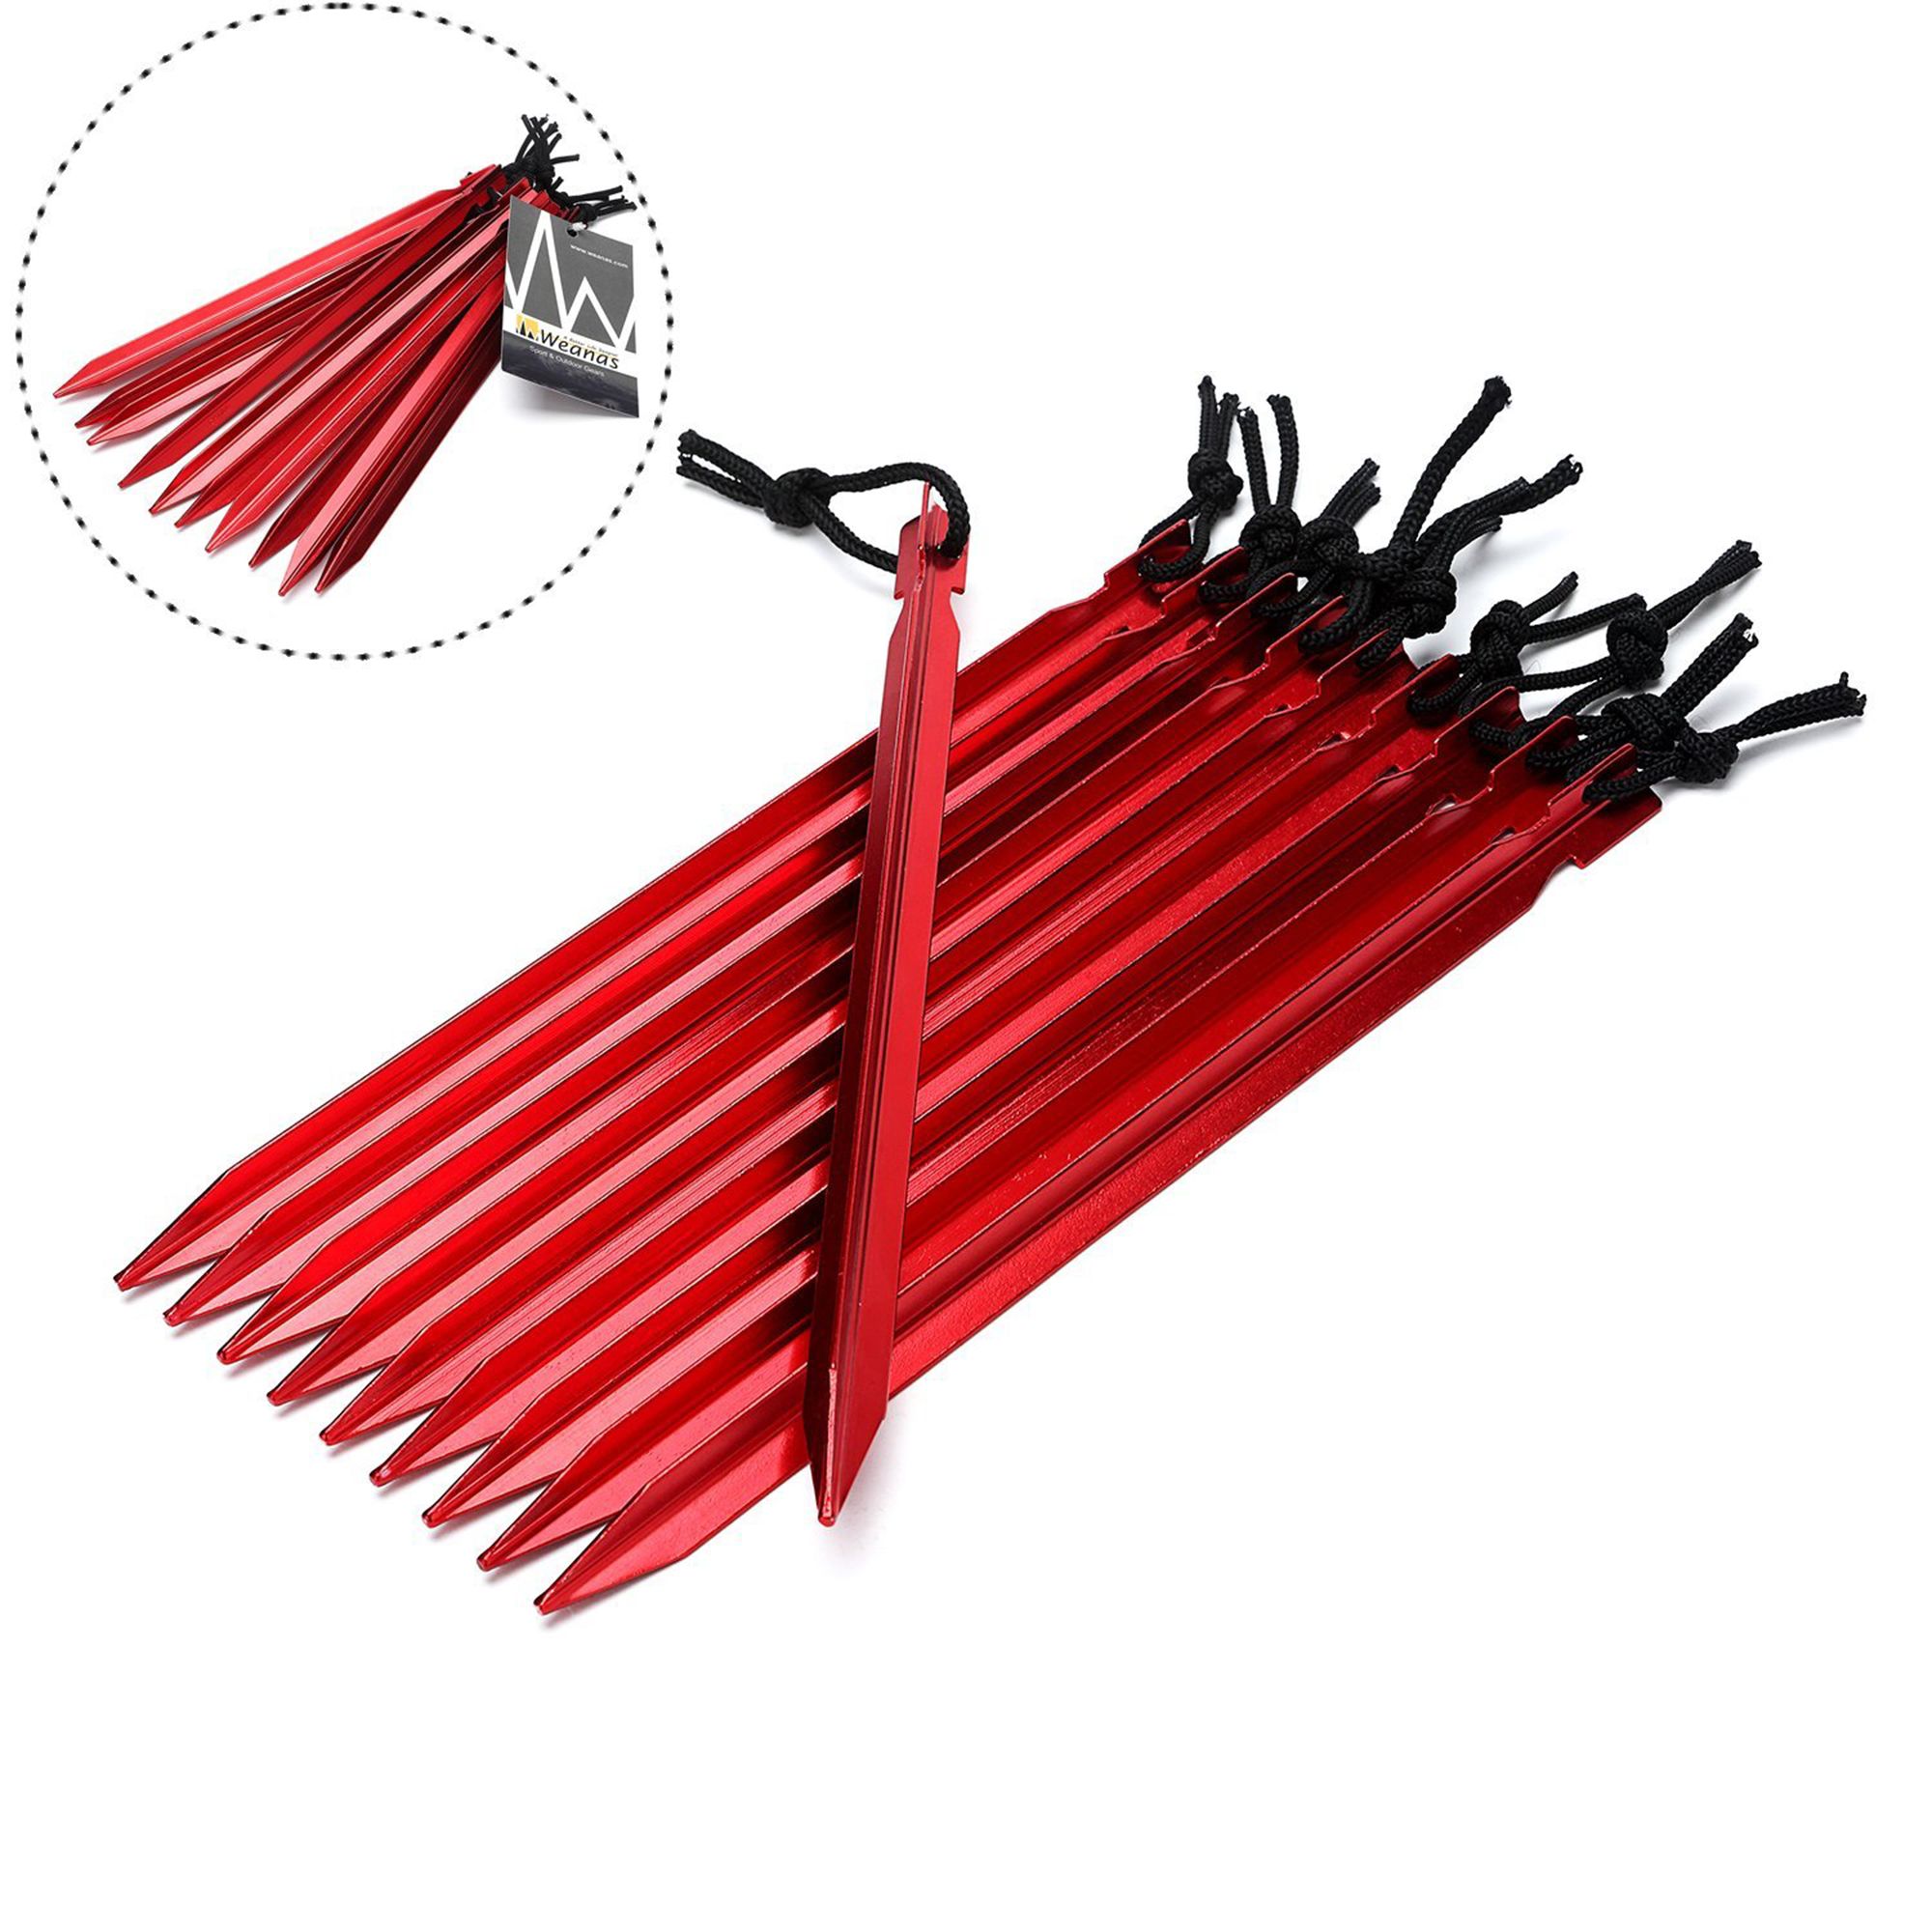 WEANAS 10 Pack Burly Aluminum Alloy Tent Stakes Tent pegs Lightweight Aluminum Pegs Footprint  sc 1 st  Walmart.com & Metal Tent Stakes